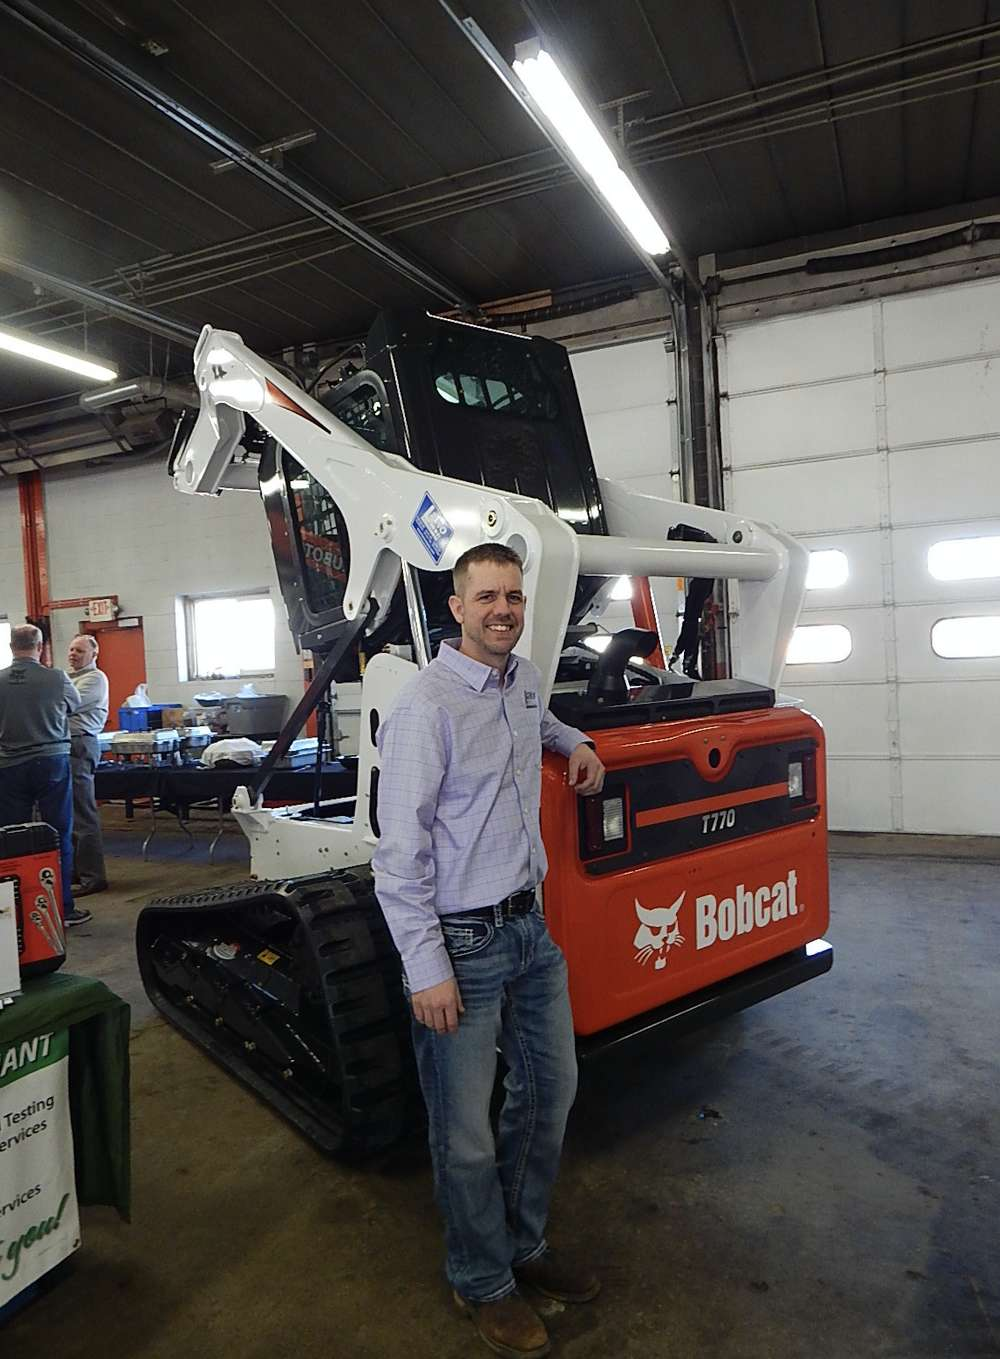 Ryan Sabre, store manager of Lano Equipment Inc., Anoka, Minn., greets guests in front of a Bobcat T770 track machine.